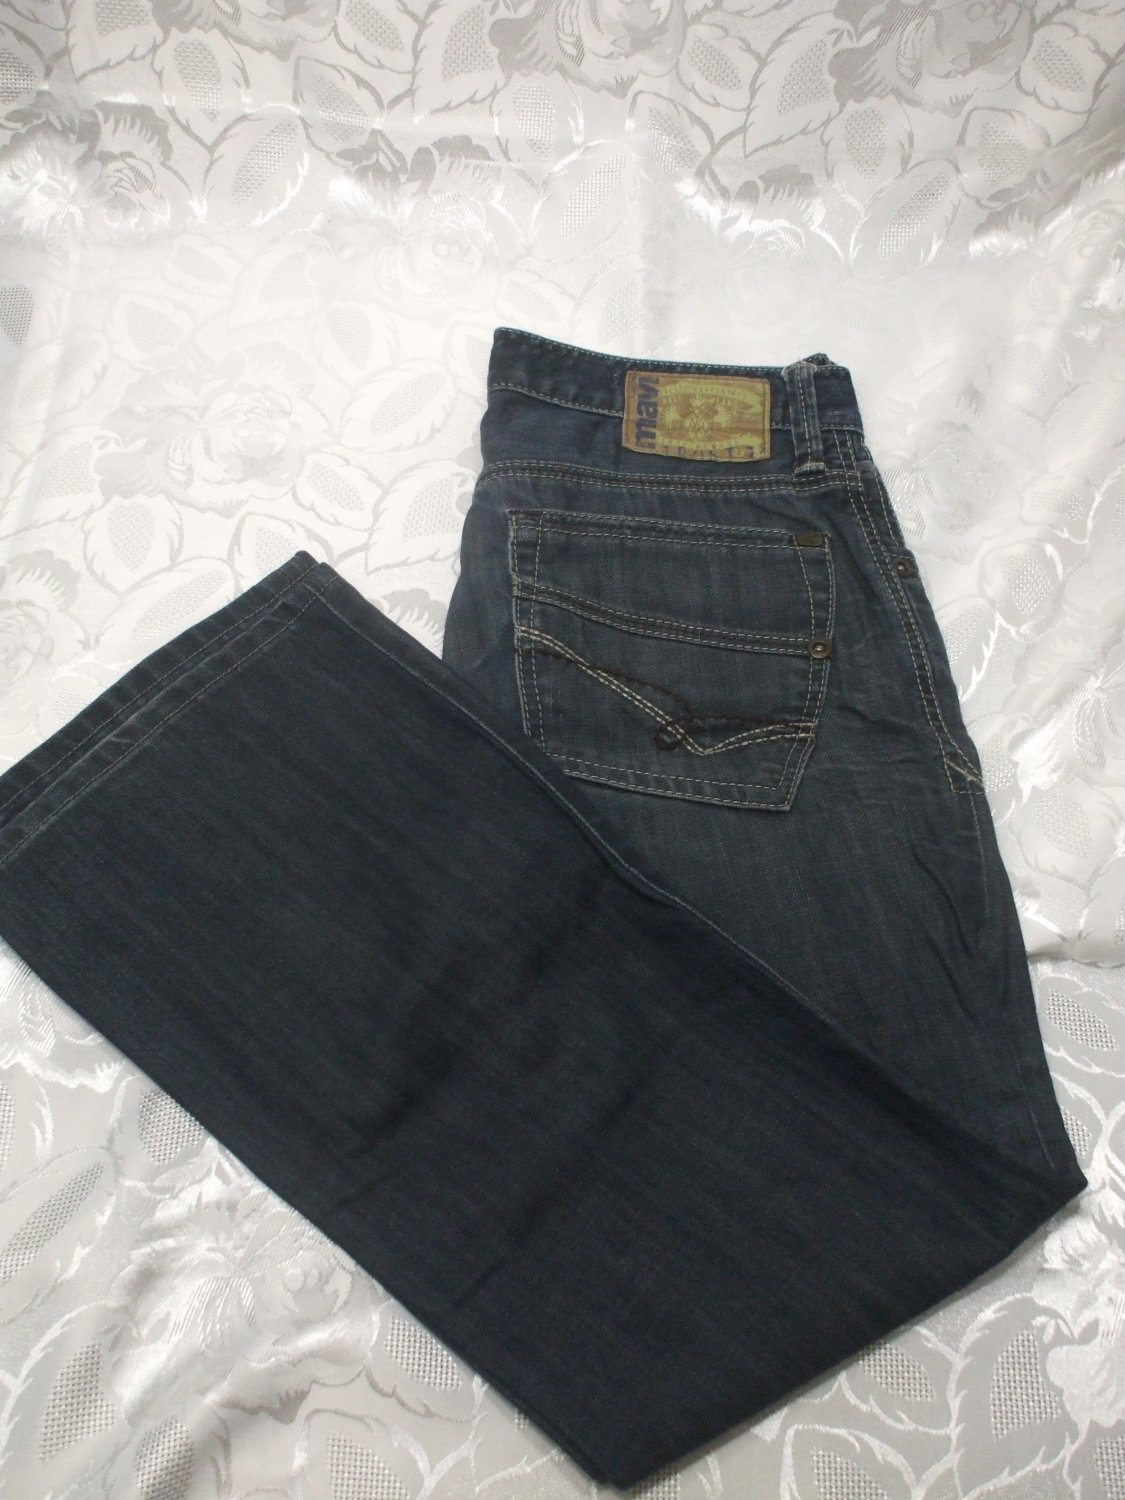 Mens Mavi Jeans Wide Legs MCMXCI 31 inches Waist